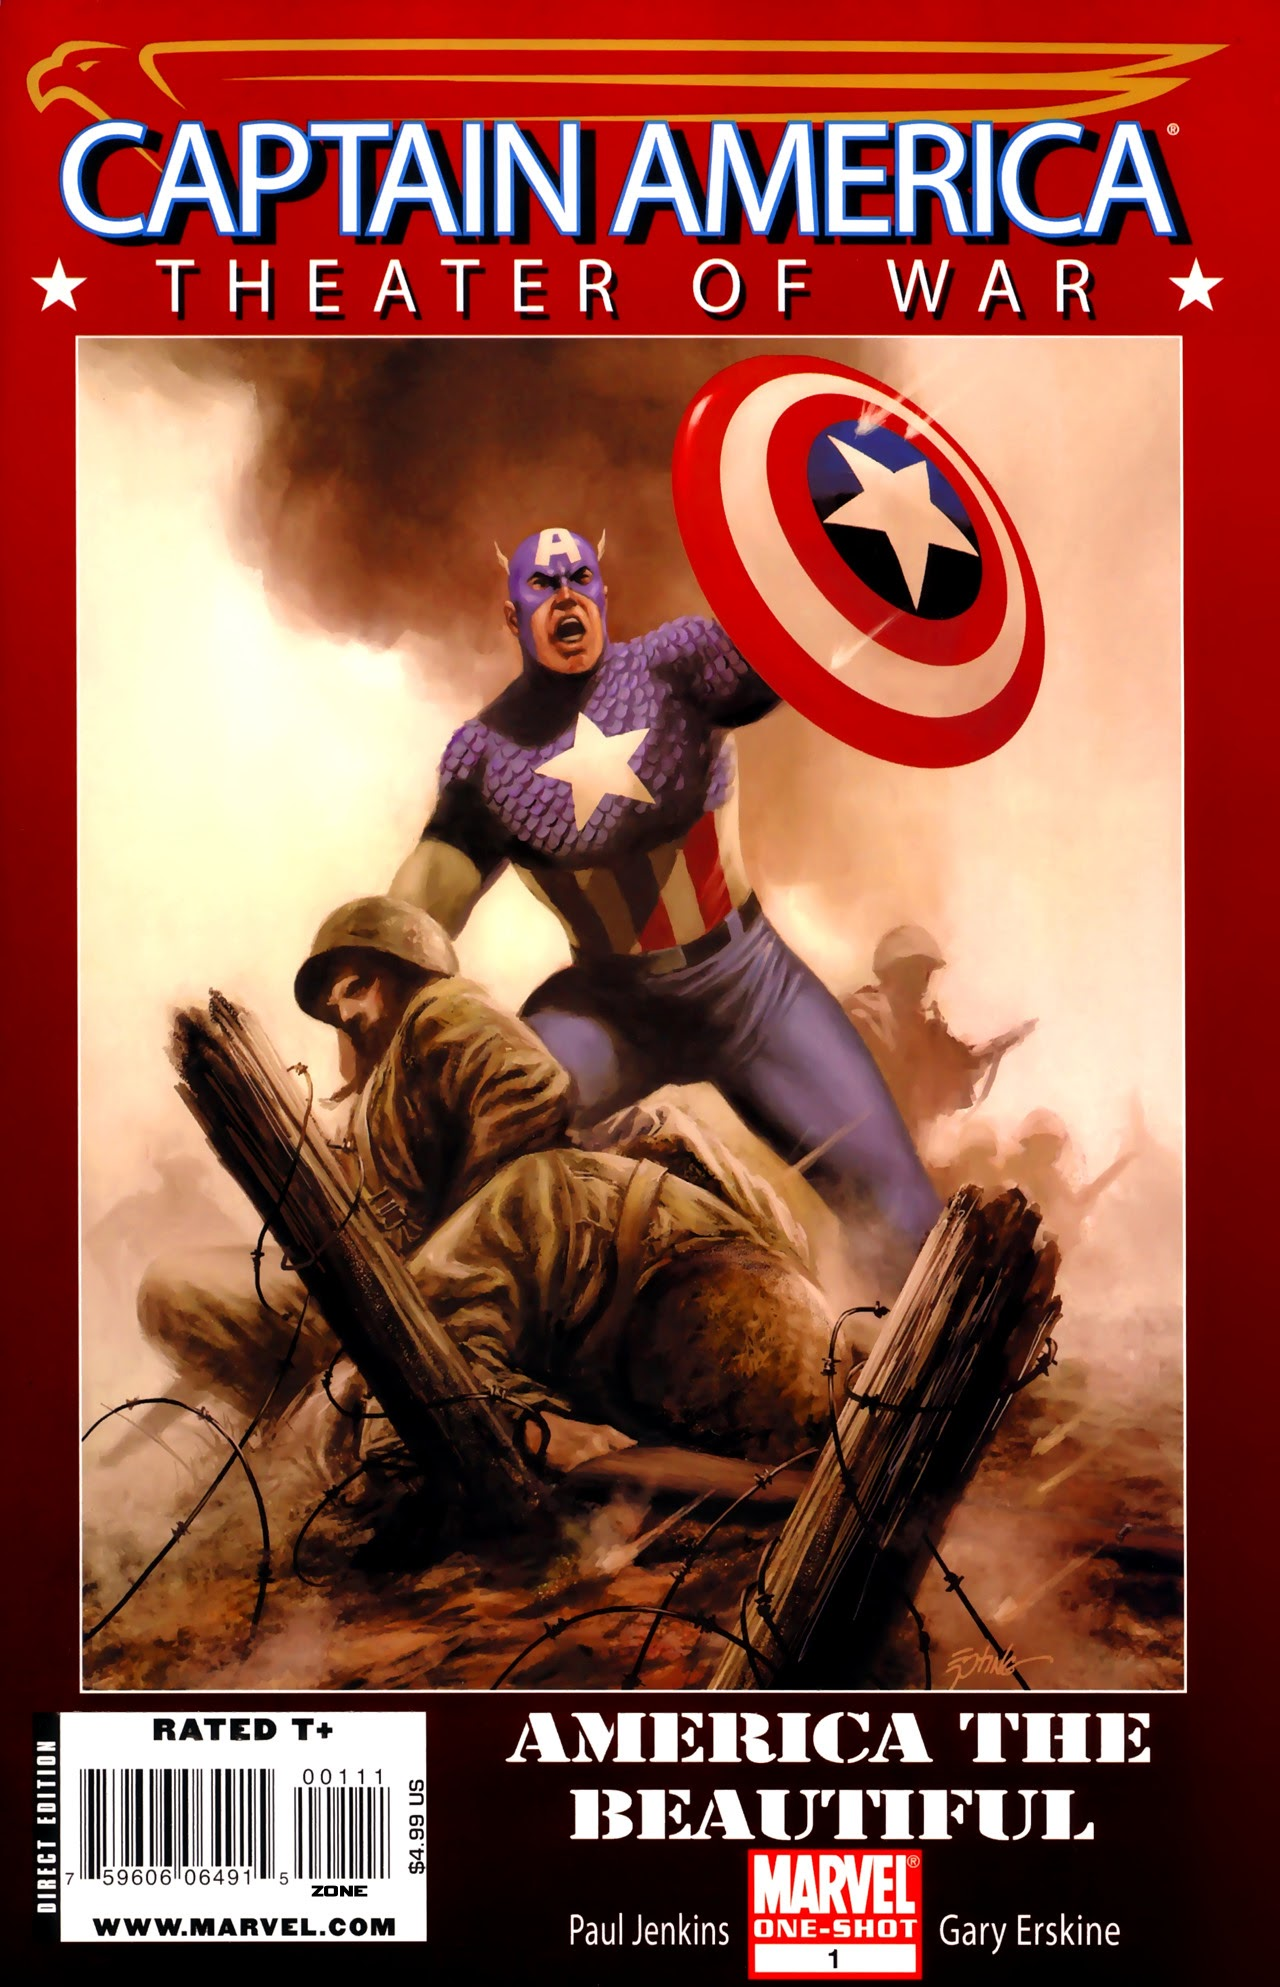 Captain America Theater of War: America the Beautiful Full Page 1